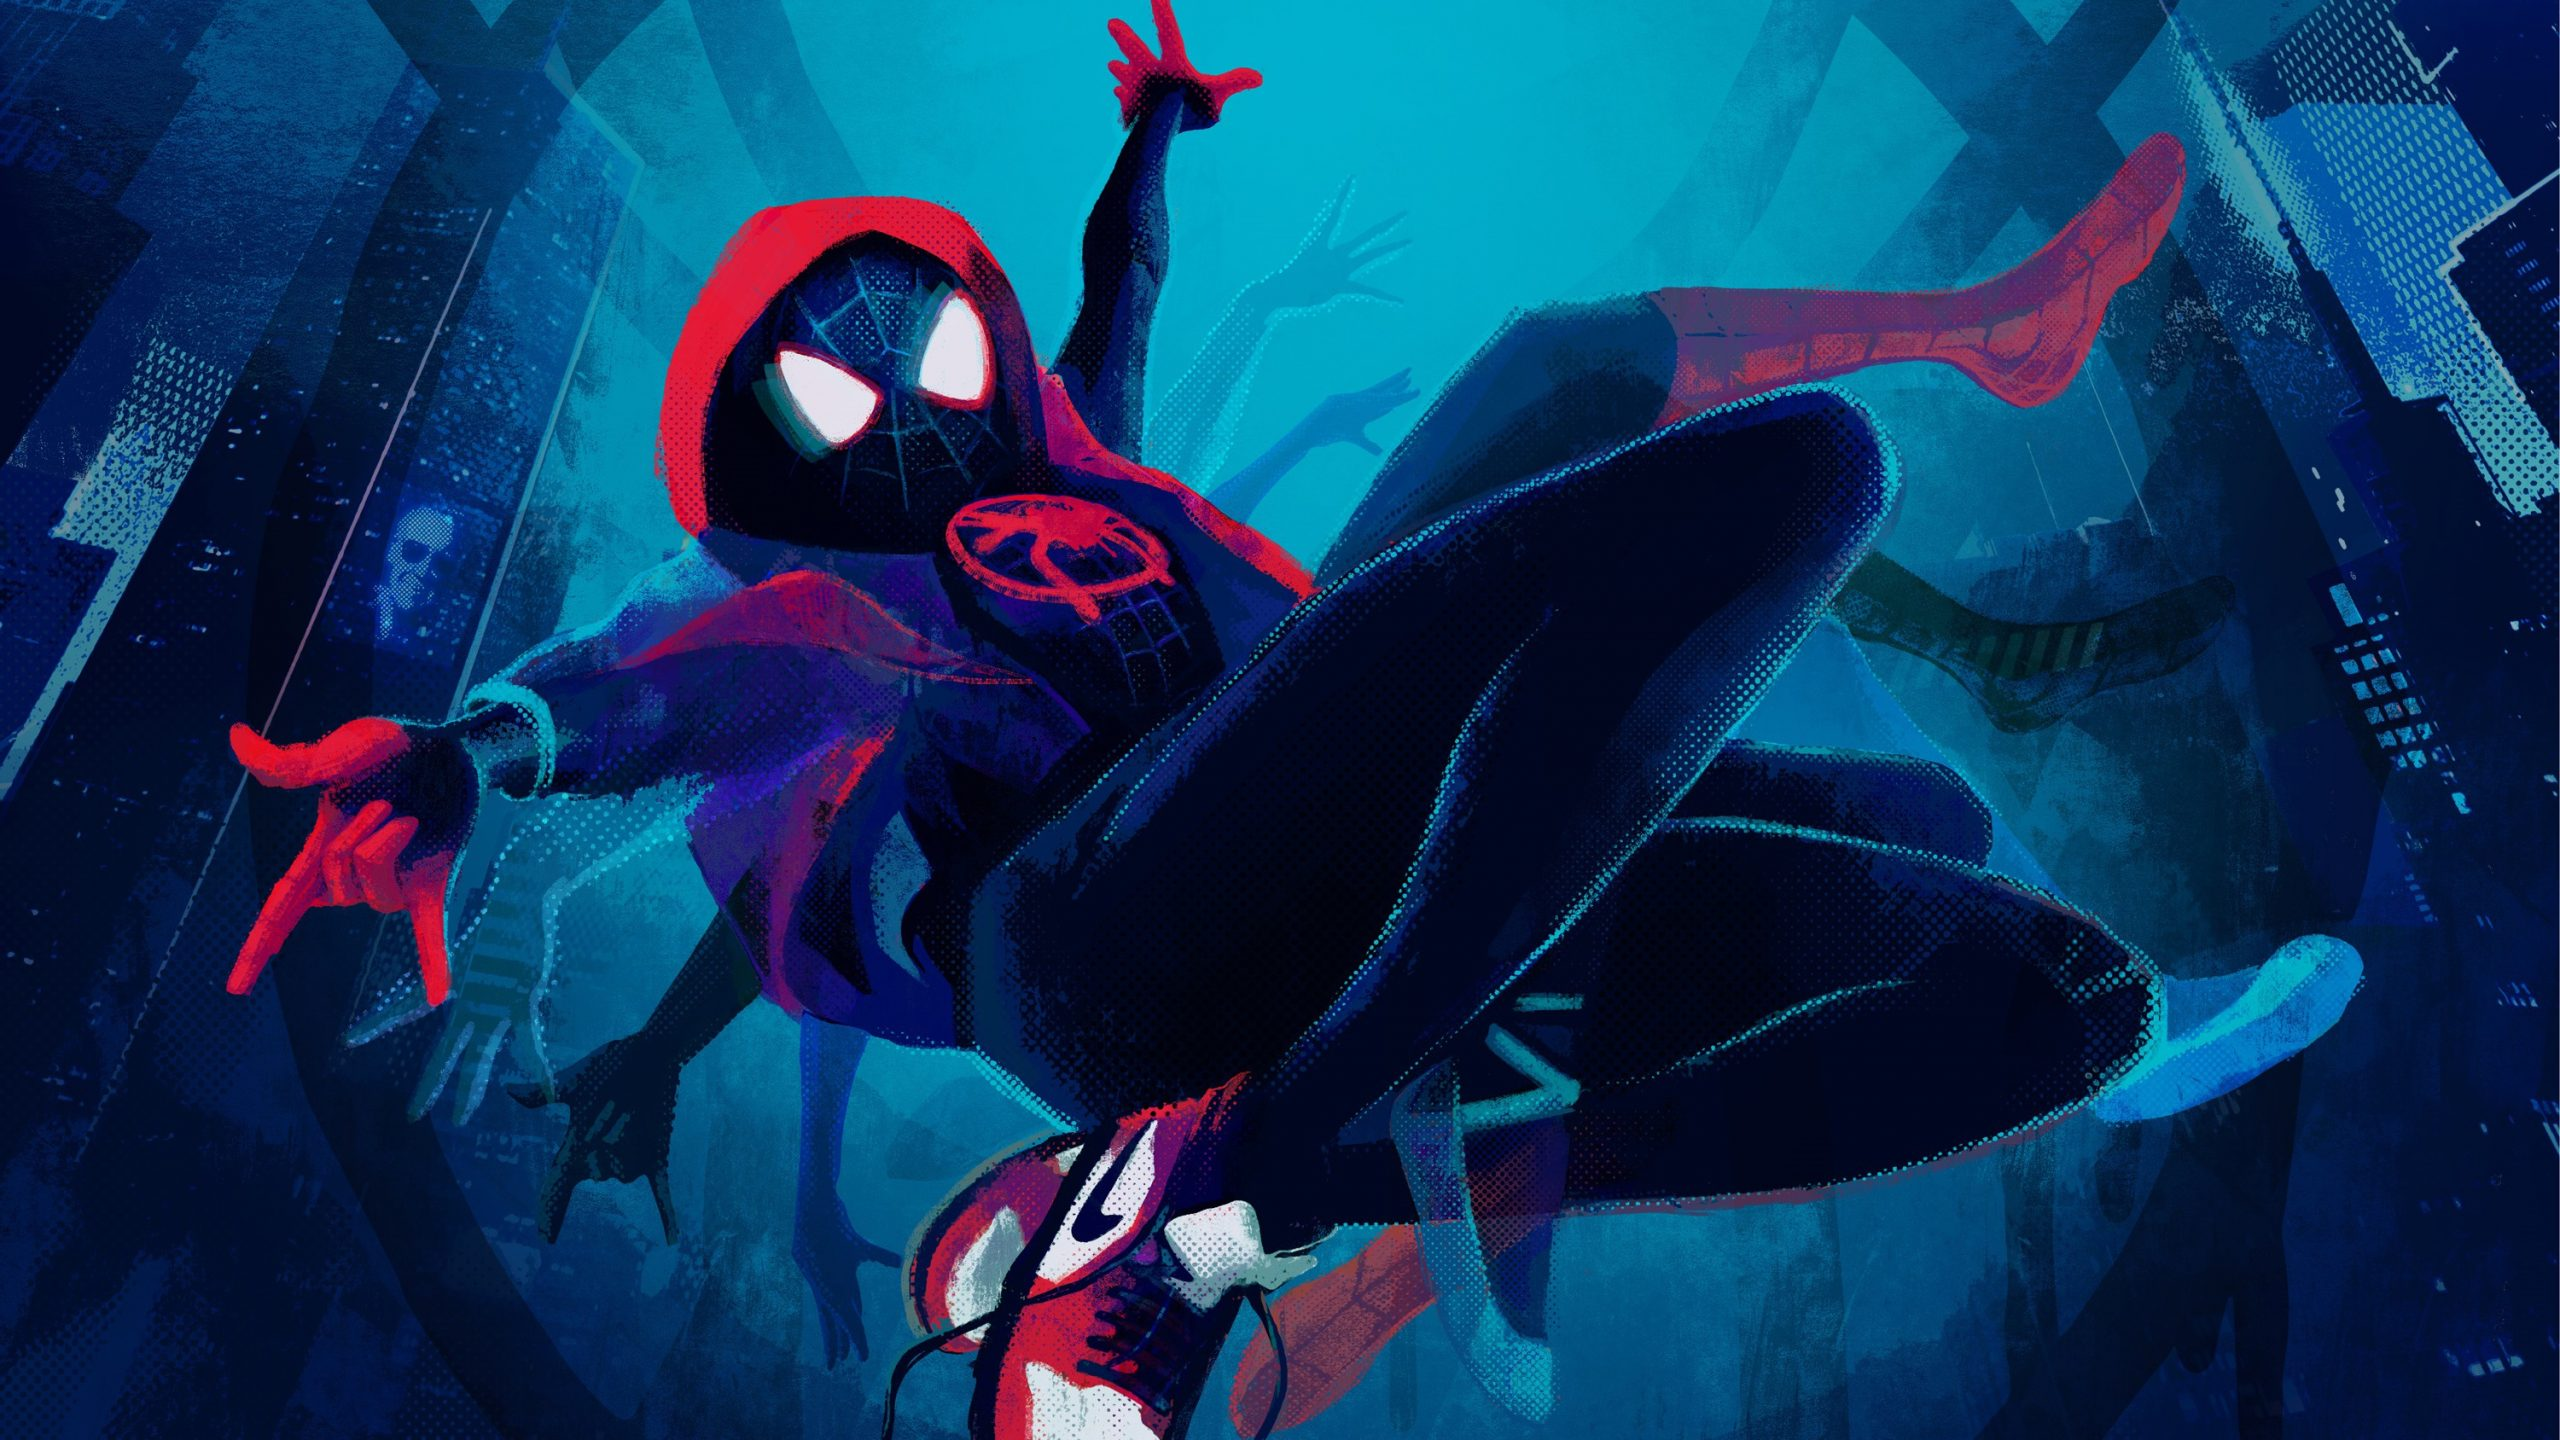 spider man into the spider verse hd wallpapers free wallpaperxyz 42